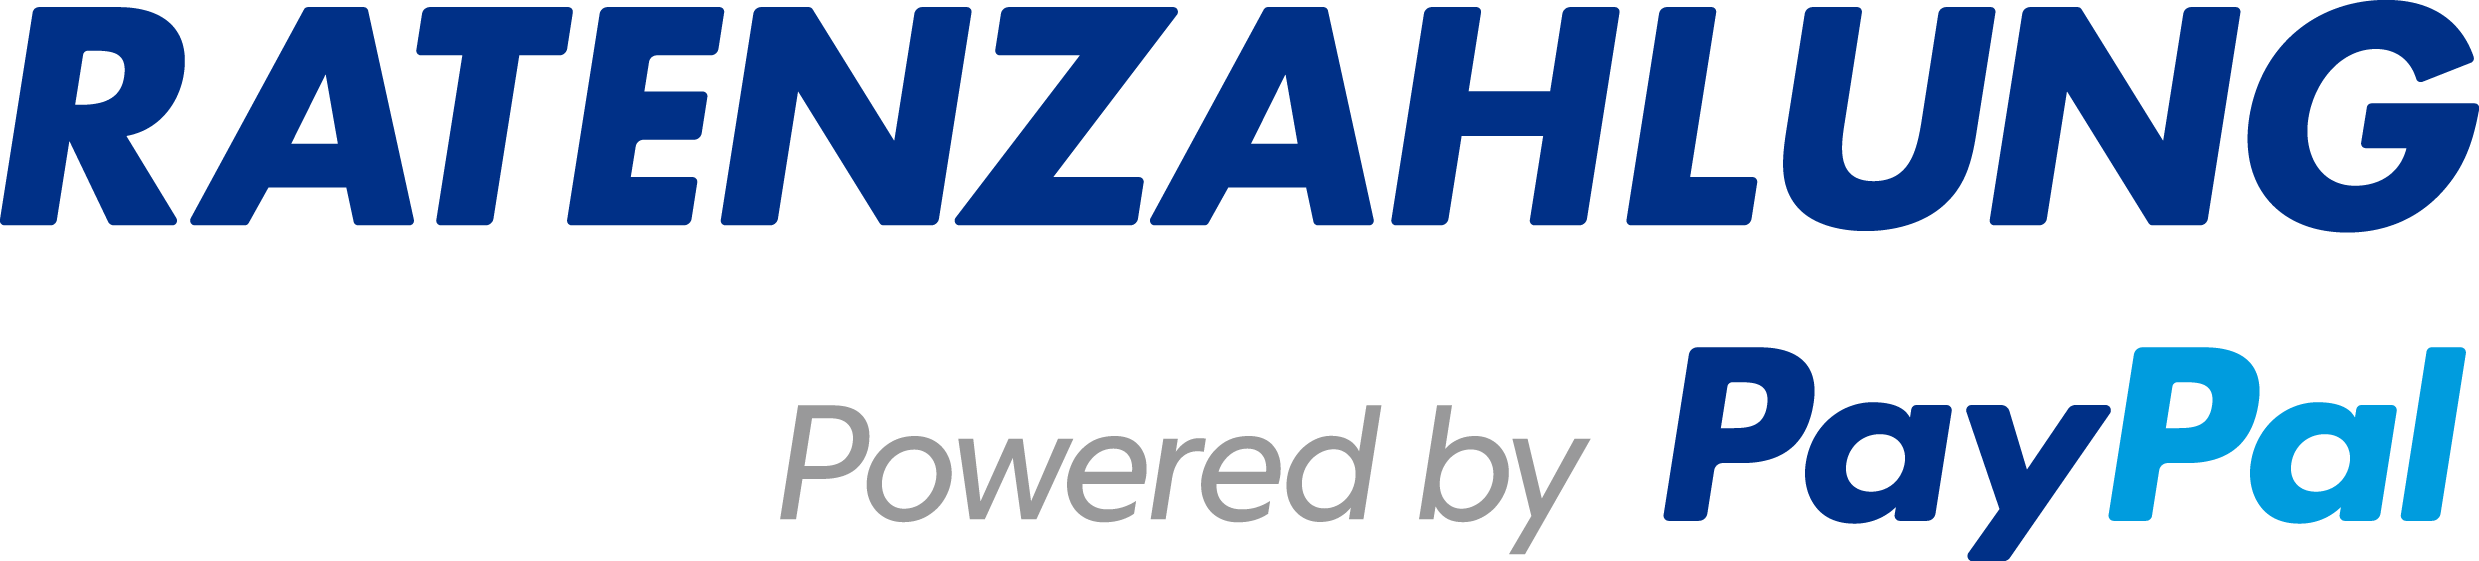 PayPal-Ratenzahlung-Logo